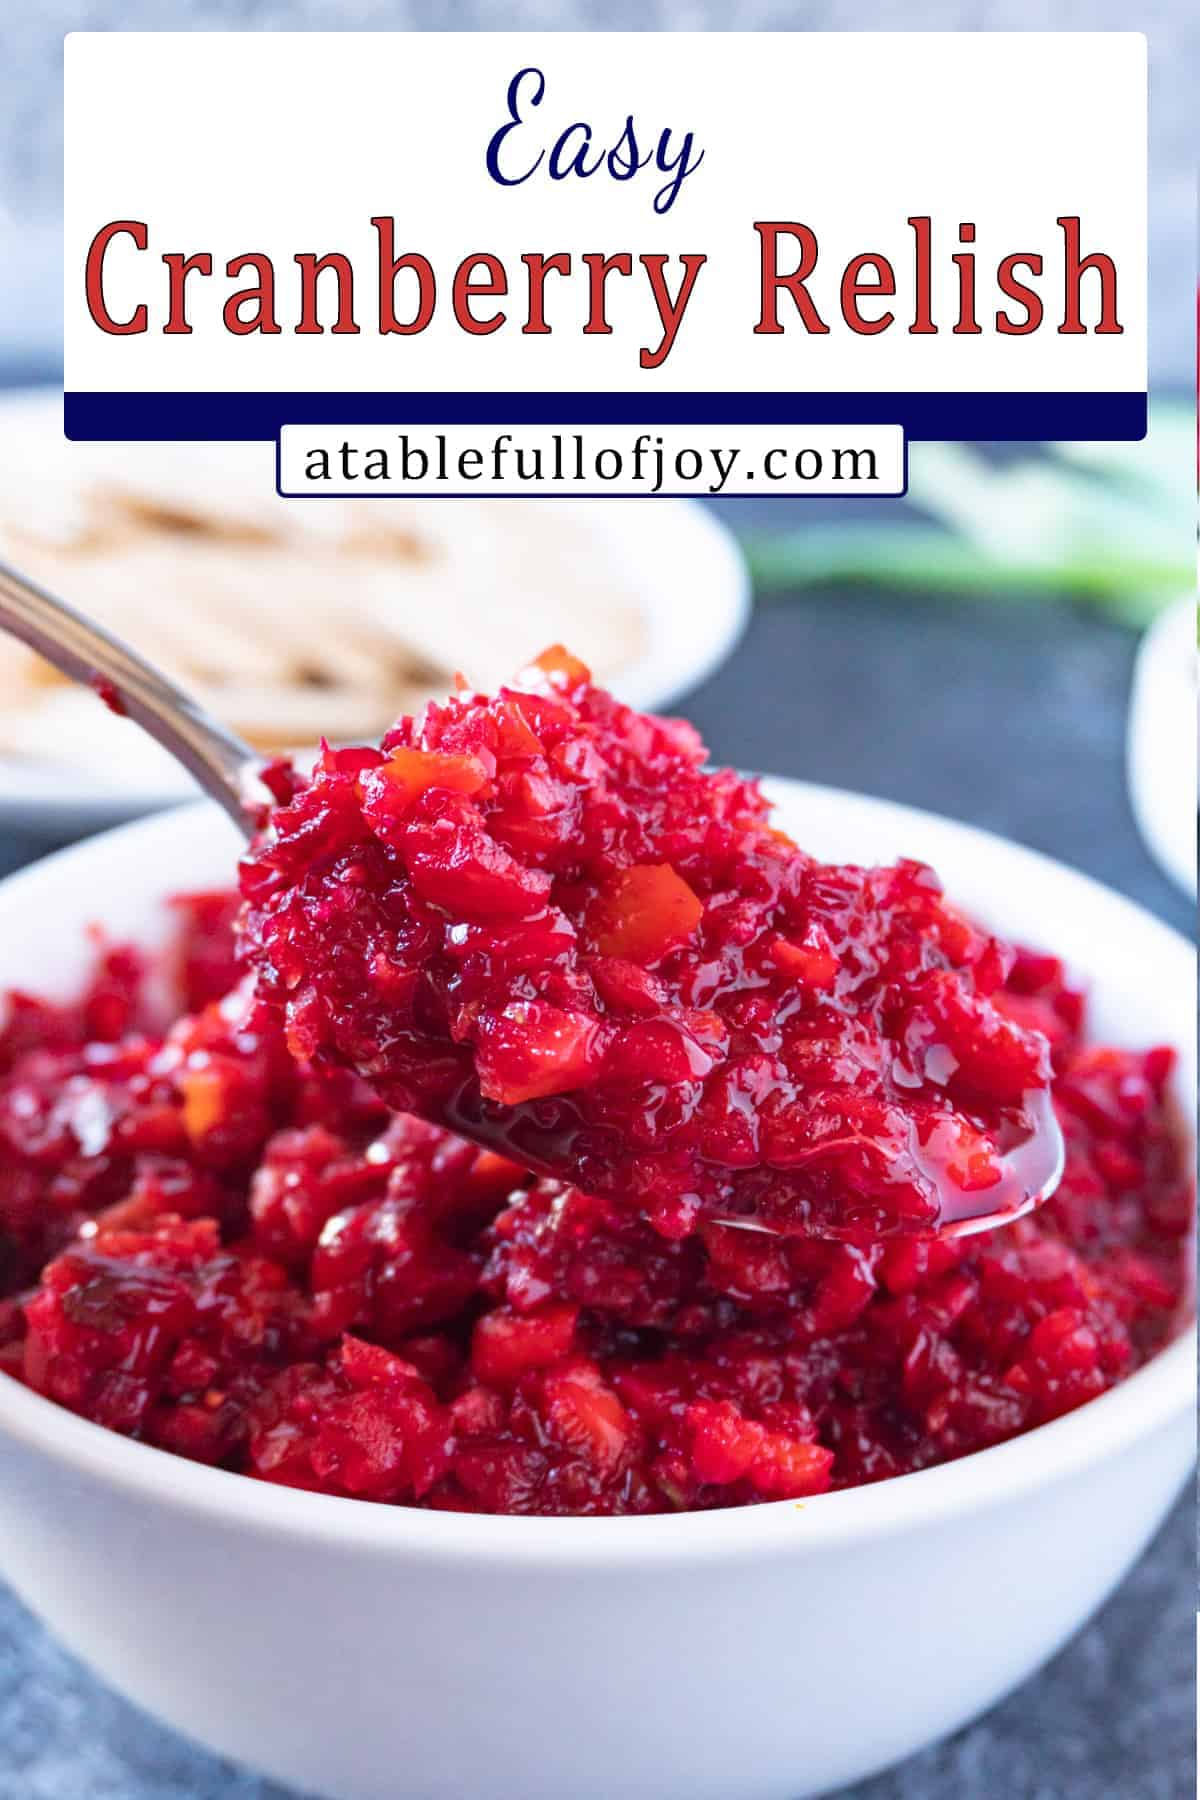 cranberry relish pinterest pin